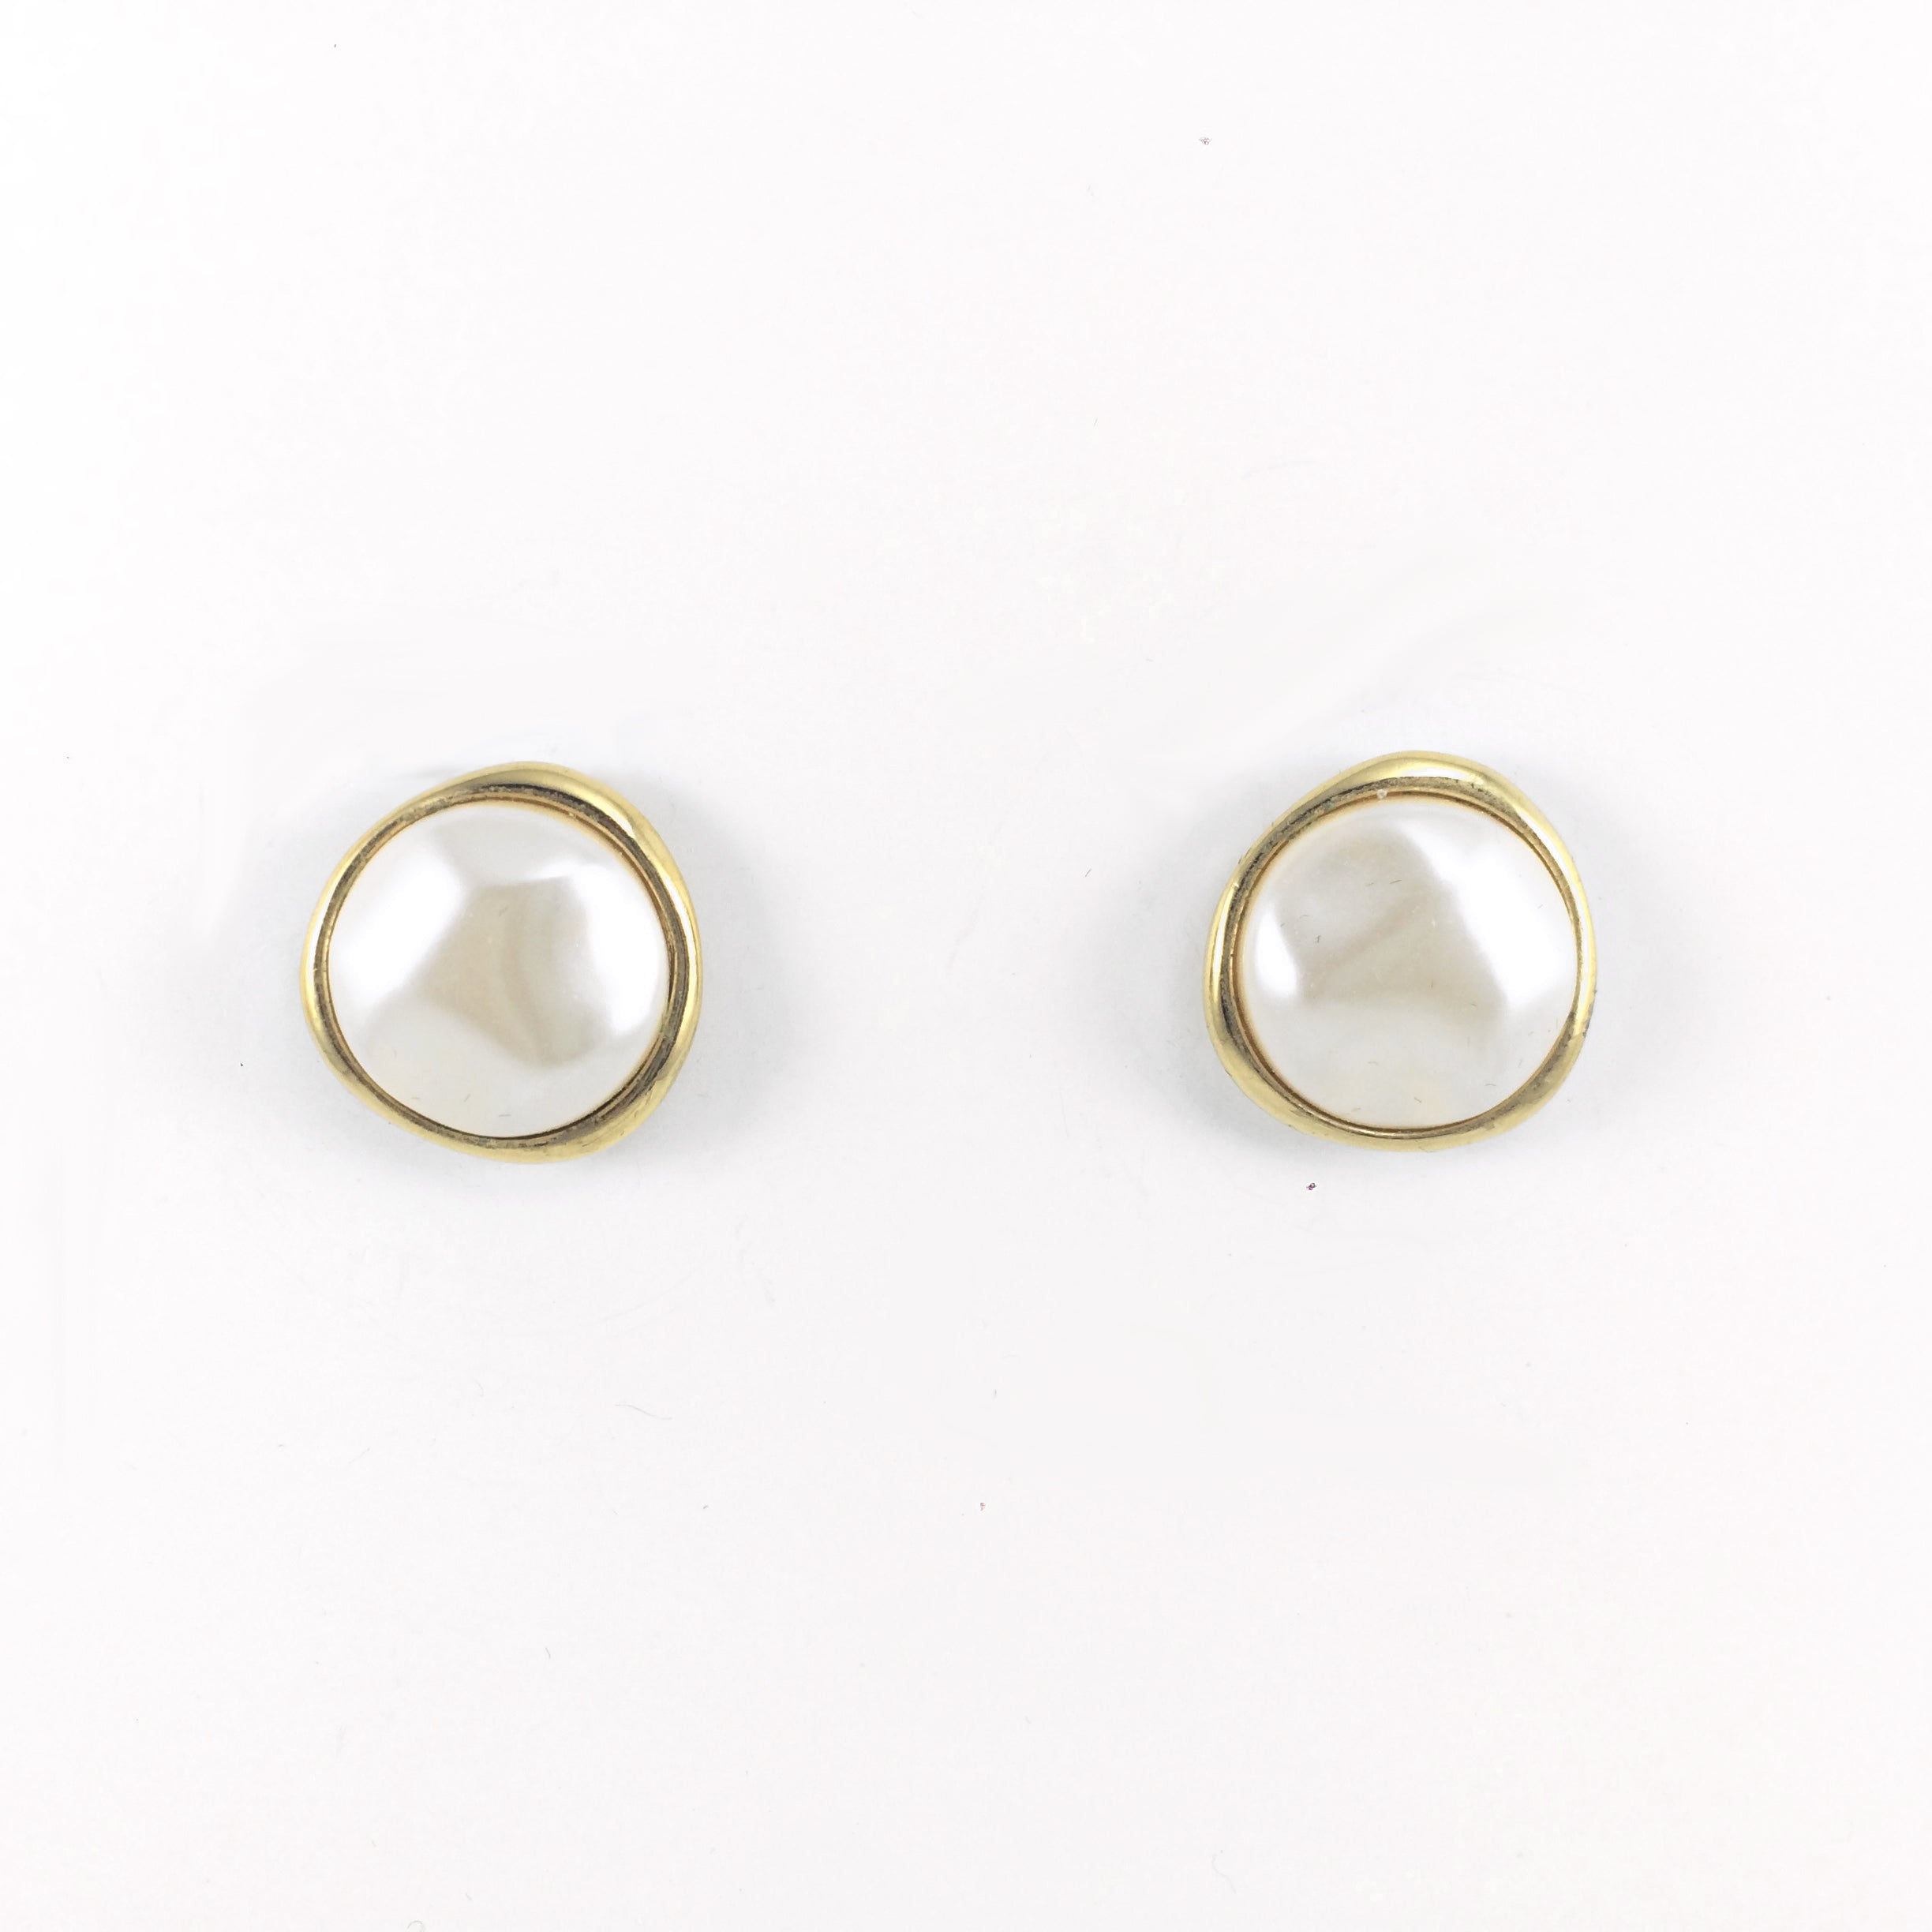 Vintage 80s Classic Monet Pearl Clip-on Earrings